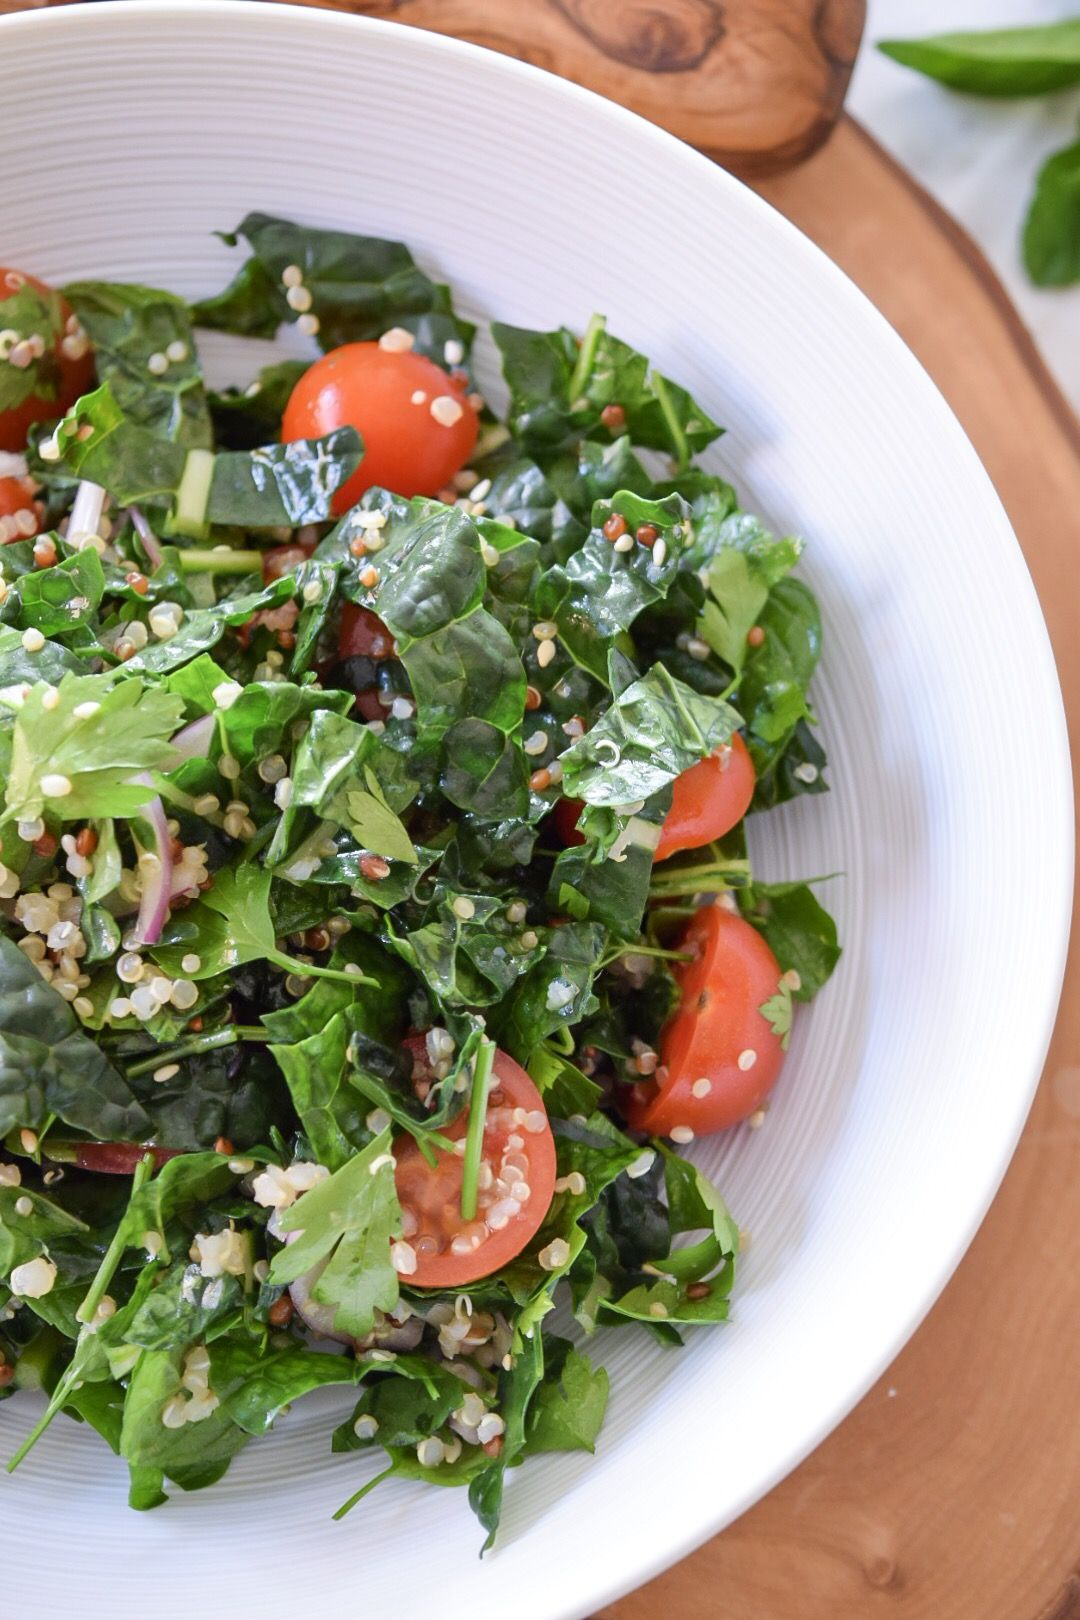 Minty Quinoa Salad with Tuscan Kale